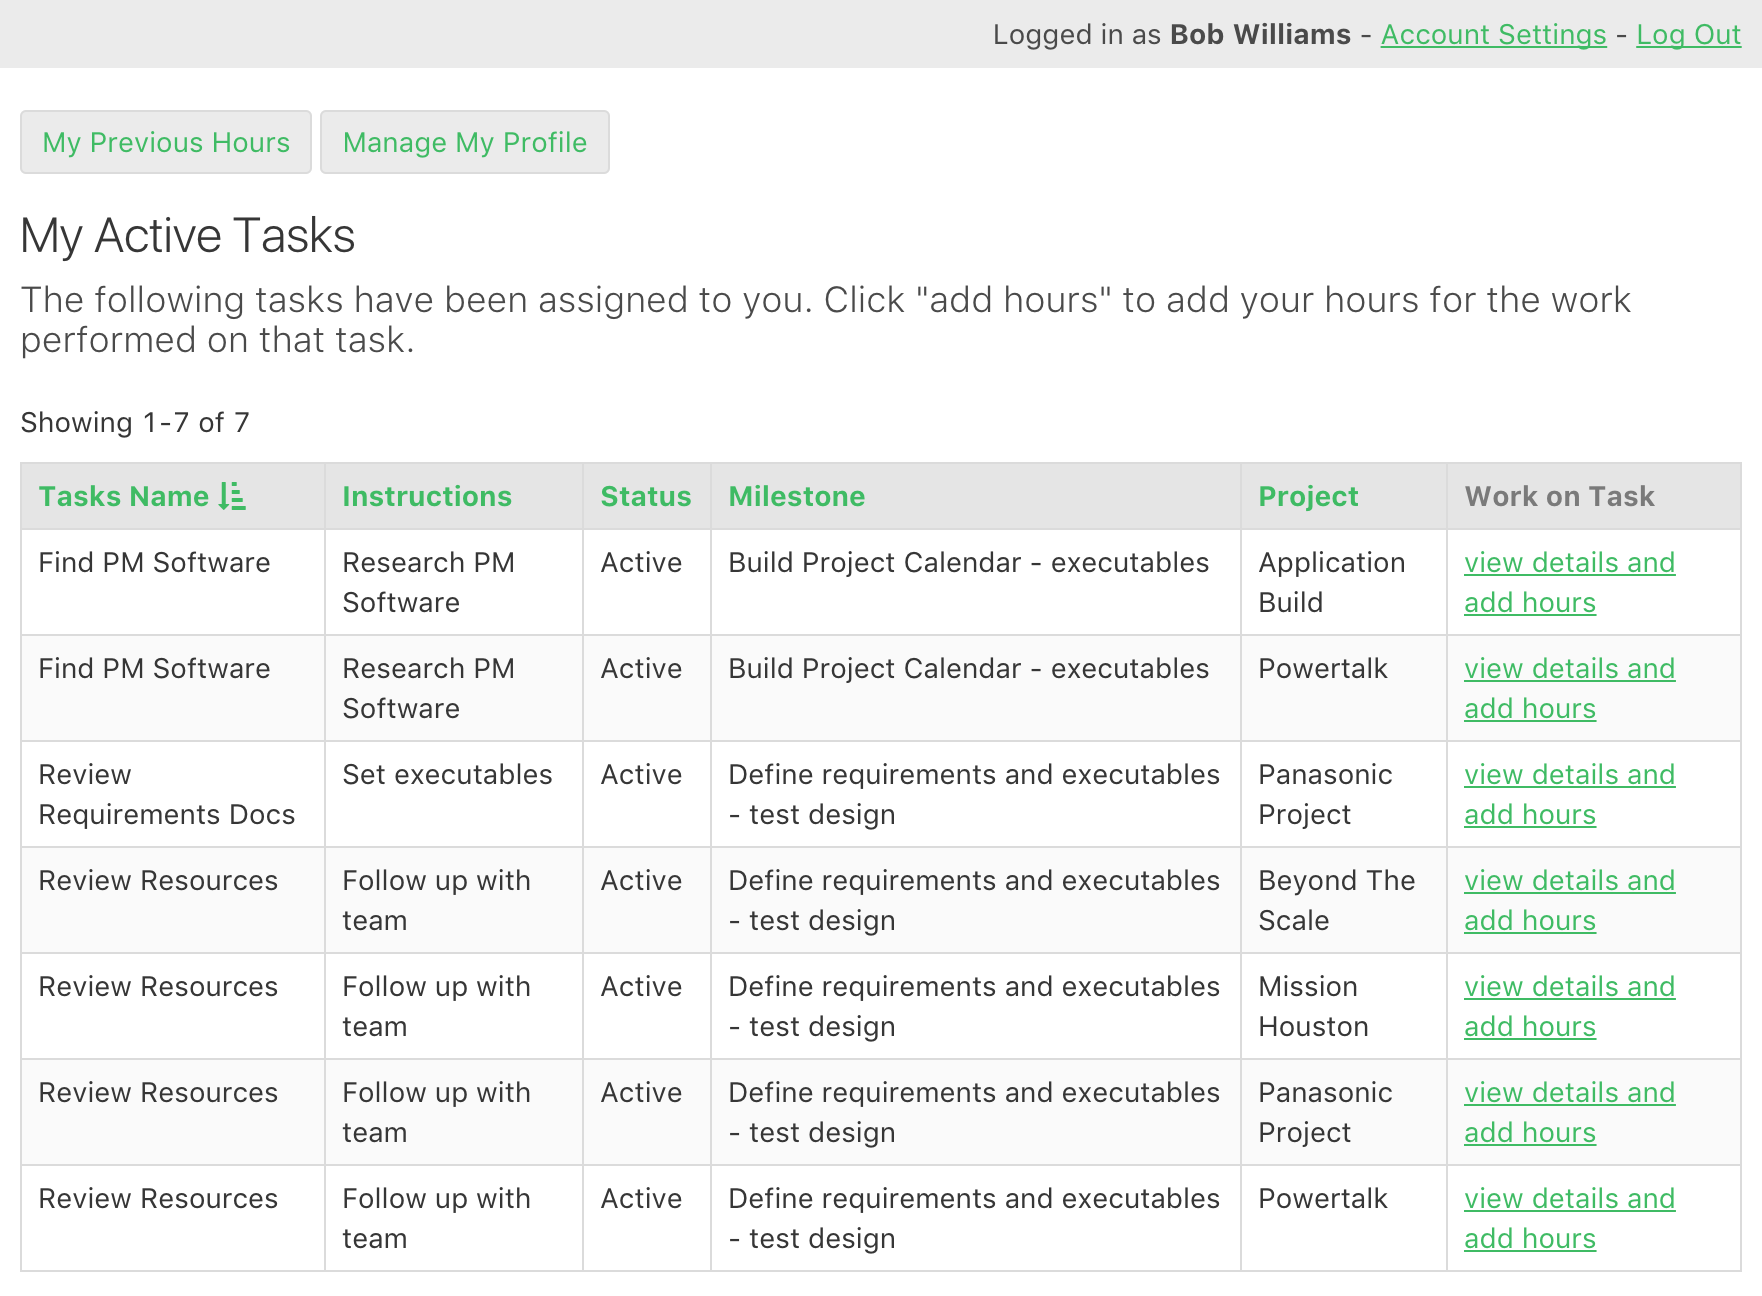 Employees log in and view all the tasks assigned to them to work on.